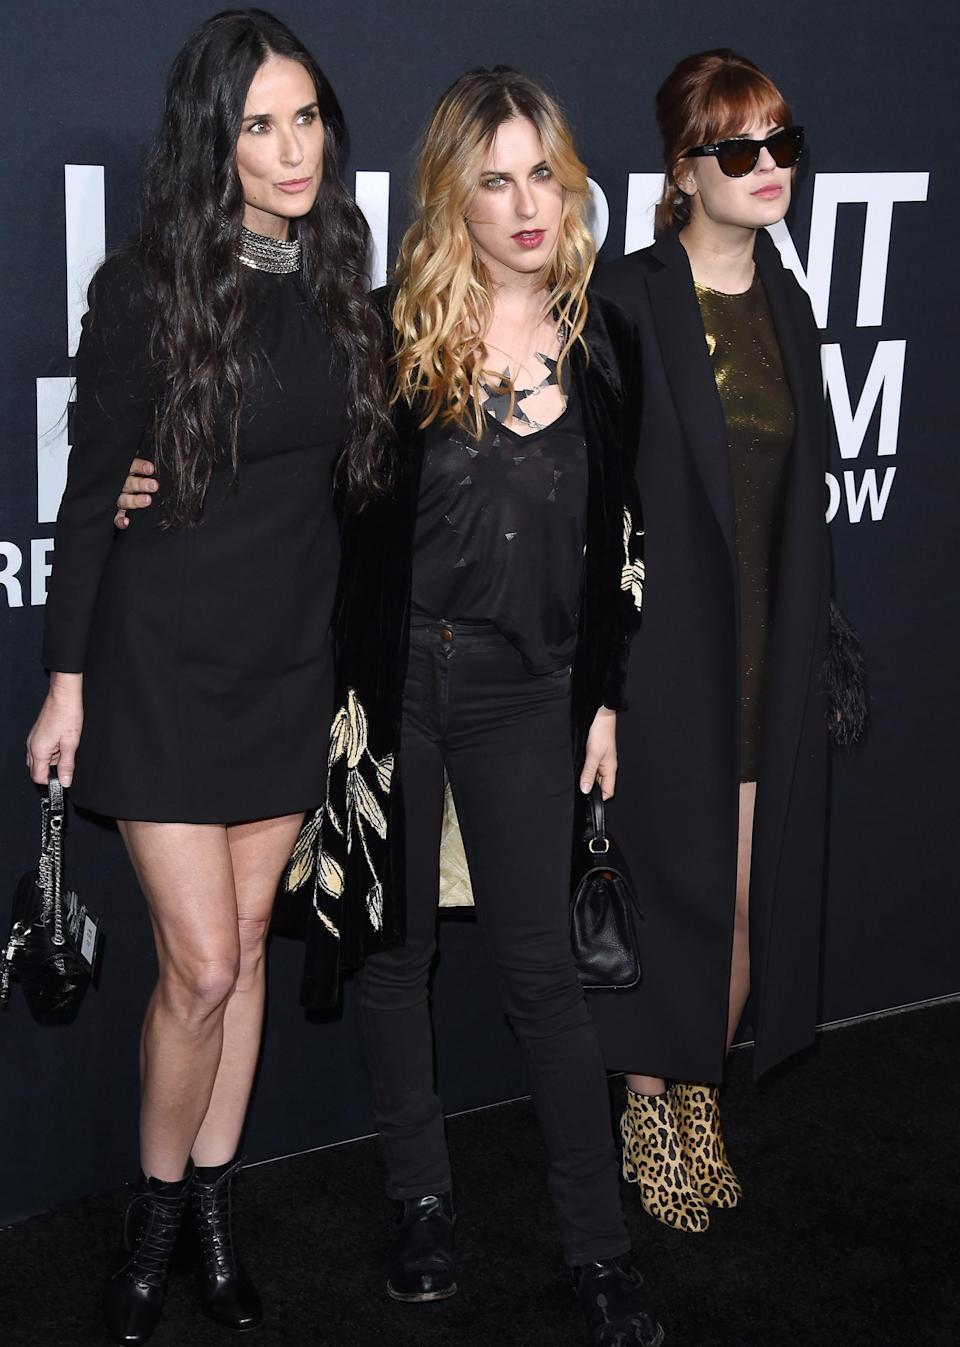 <p>Thanks to their matching all black outfits and very similar bone structures, the trio look more like sisters than mom-and-daughters at the <em>Saint Laurent</em> premiere in L.A.</p>